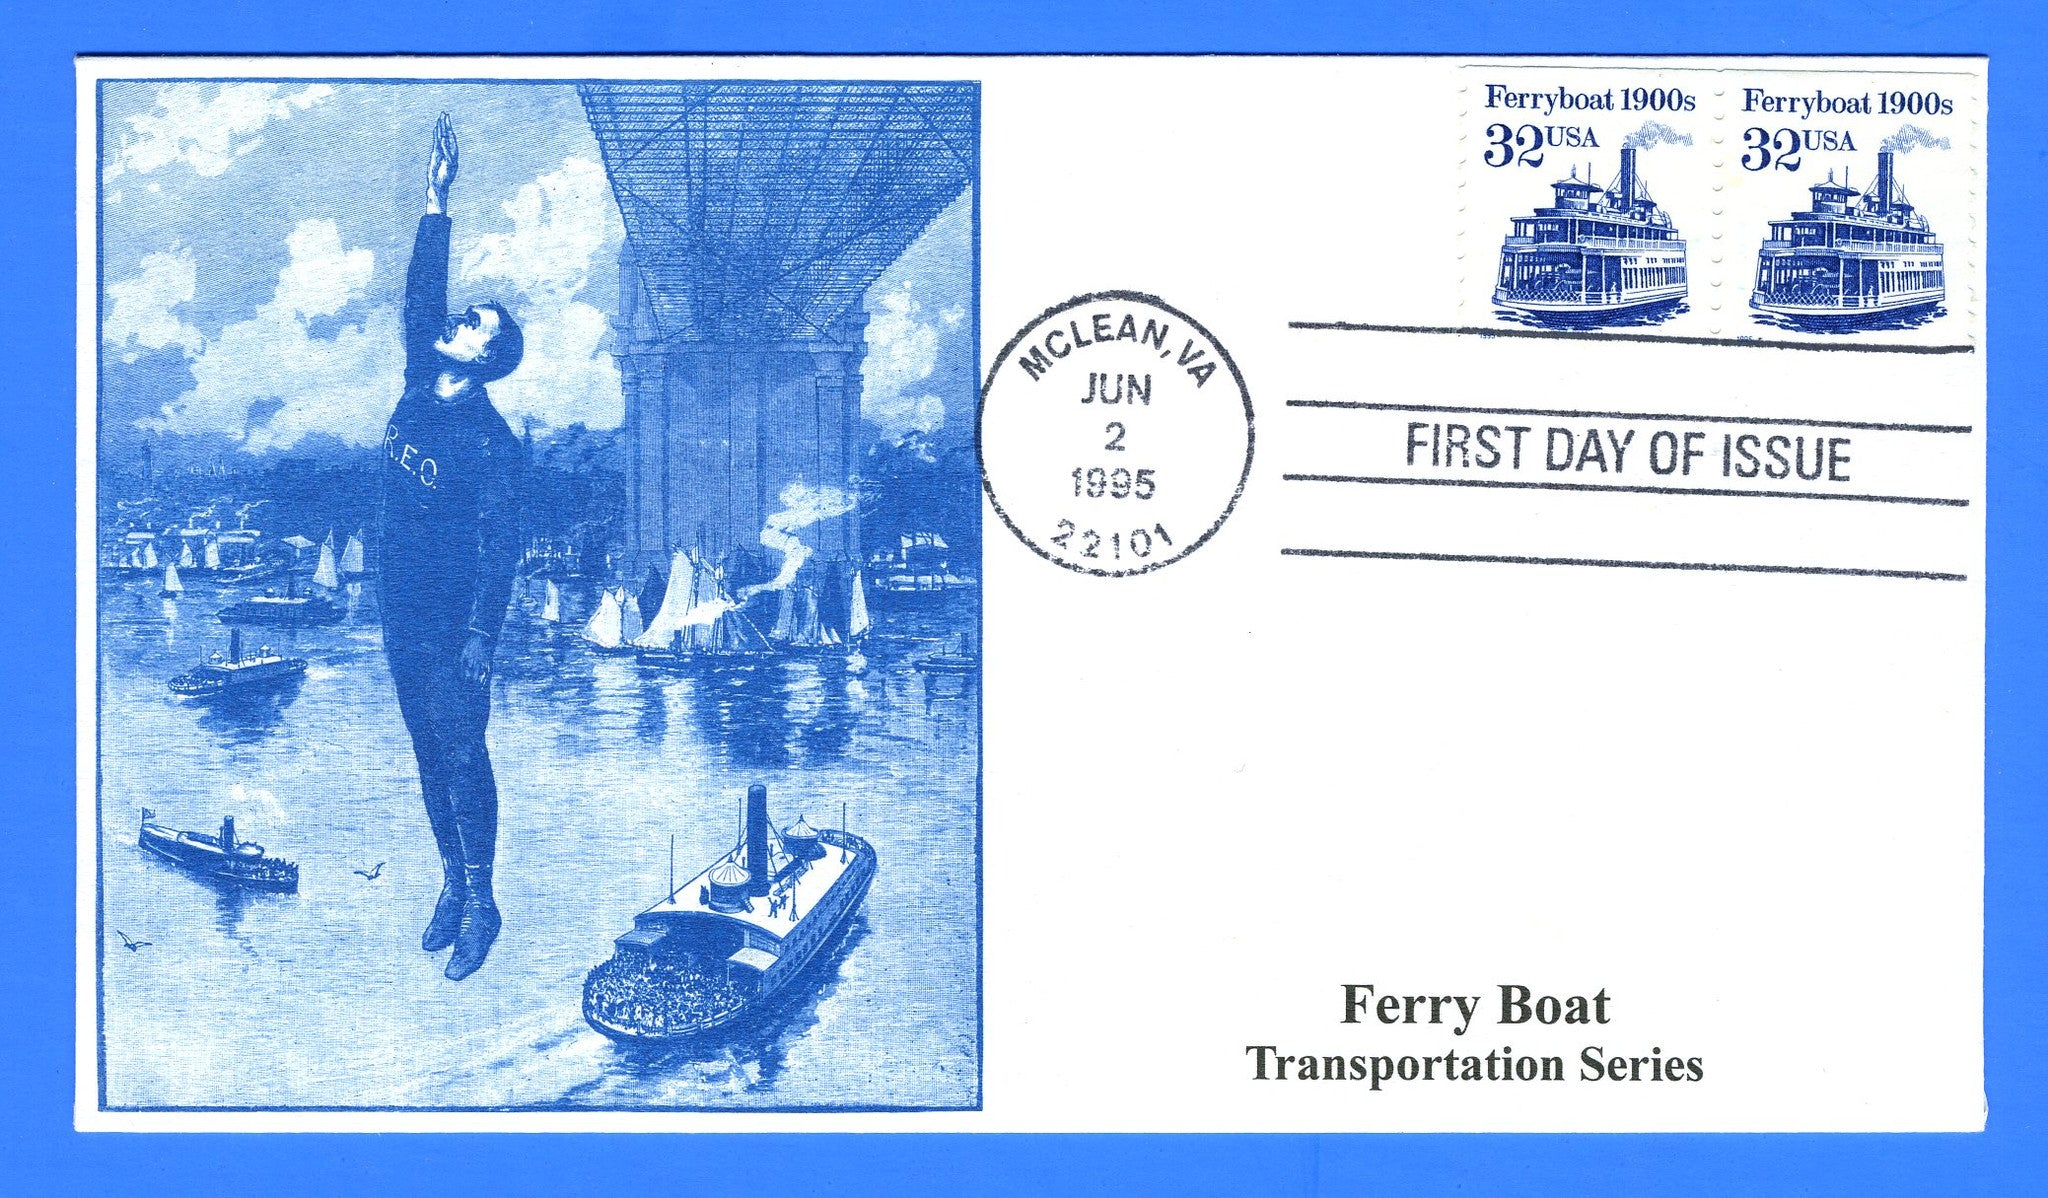 Scott 2466 32c Ferryboat, Transportation Issue First Day Cover by S & T Cachets